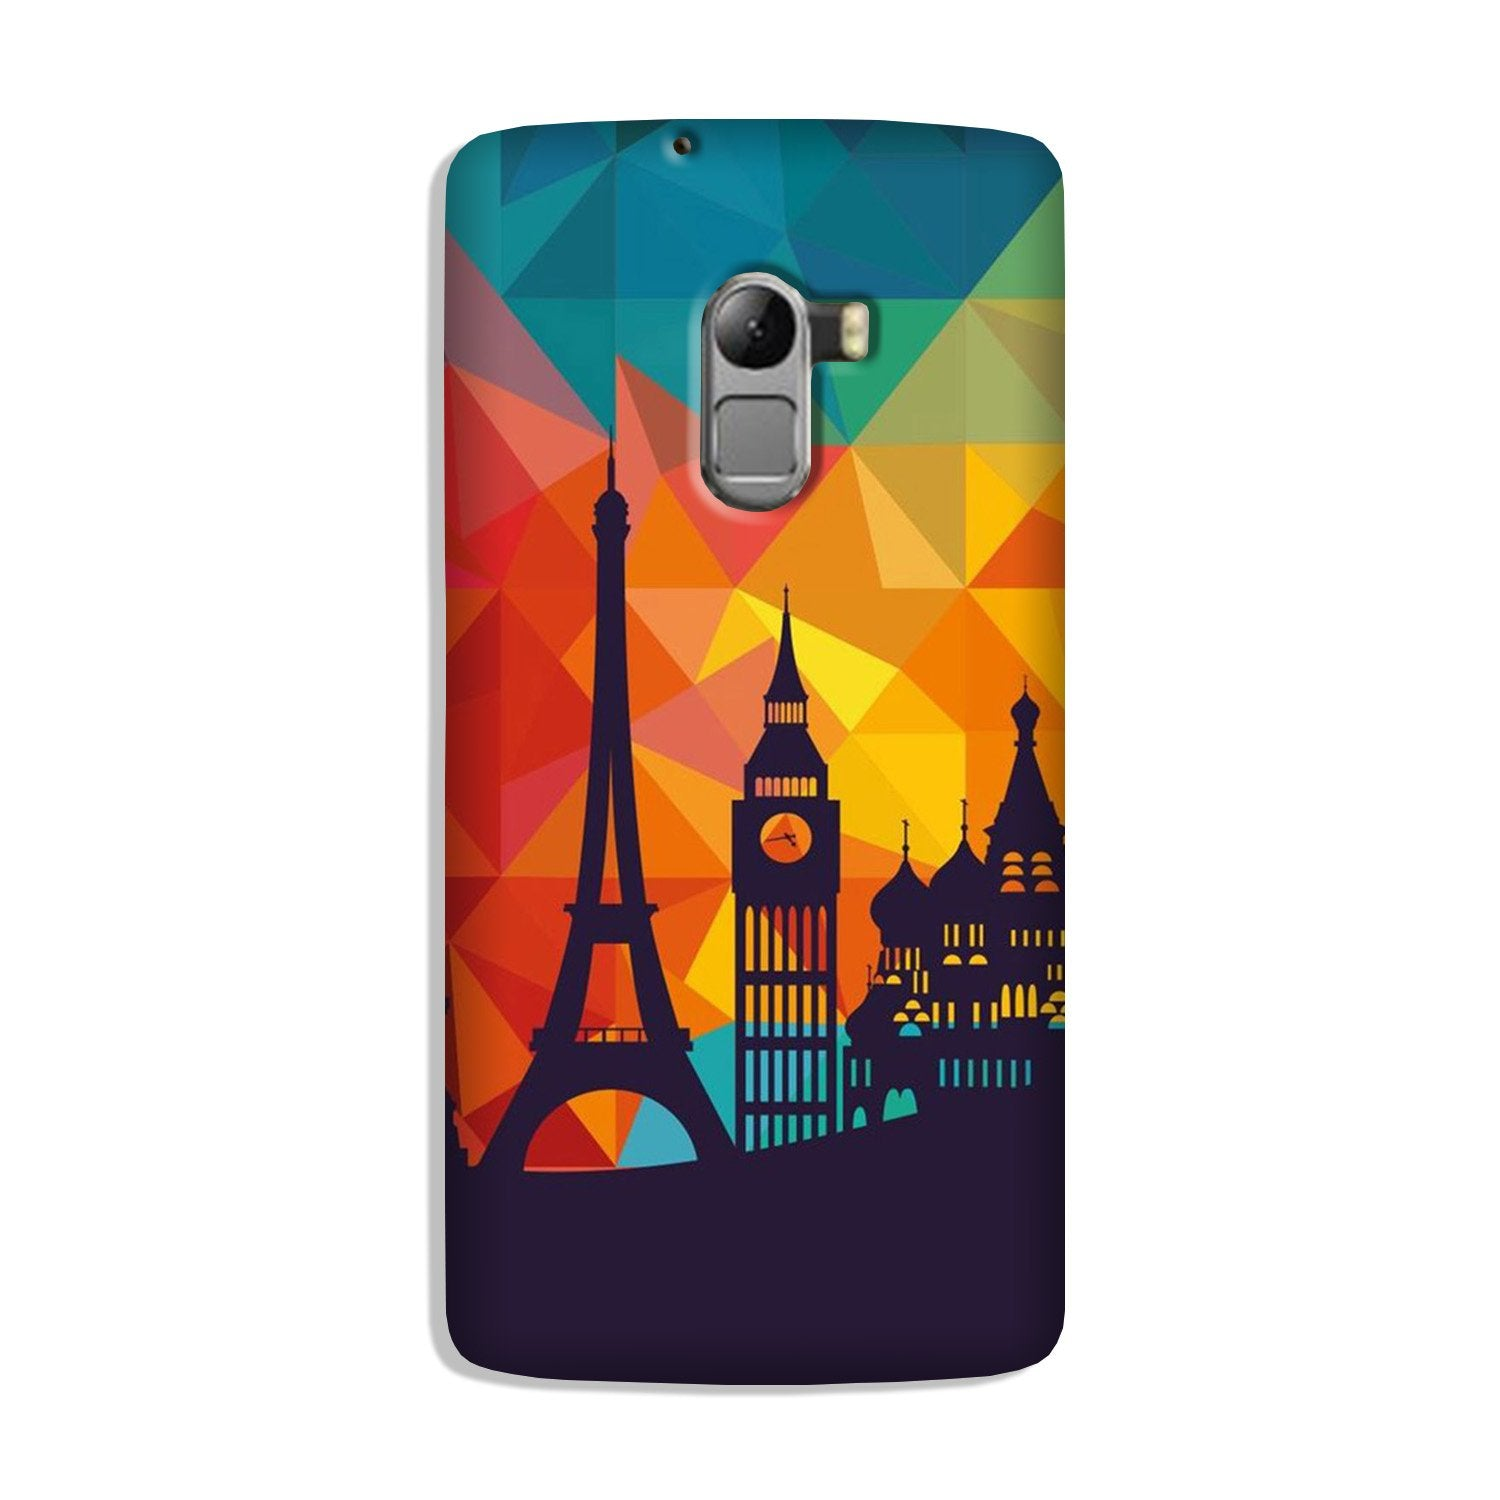 Eiffel Tower Case for Lenovo K4 Note